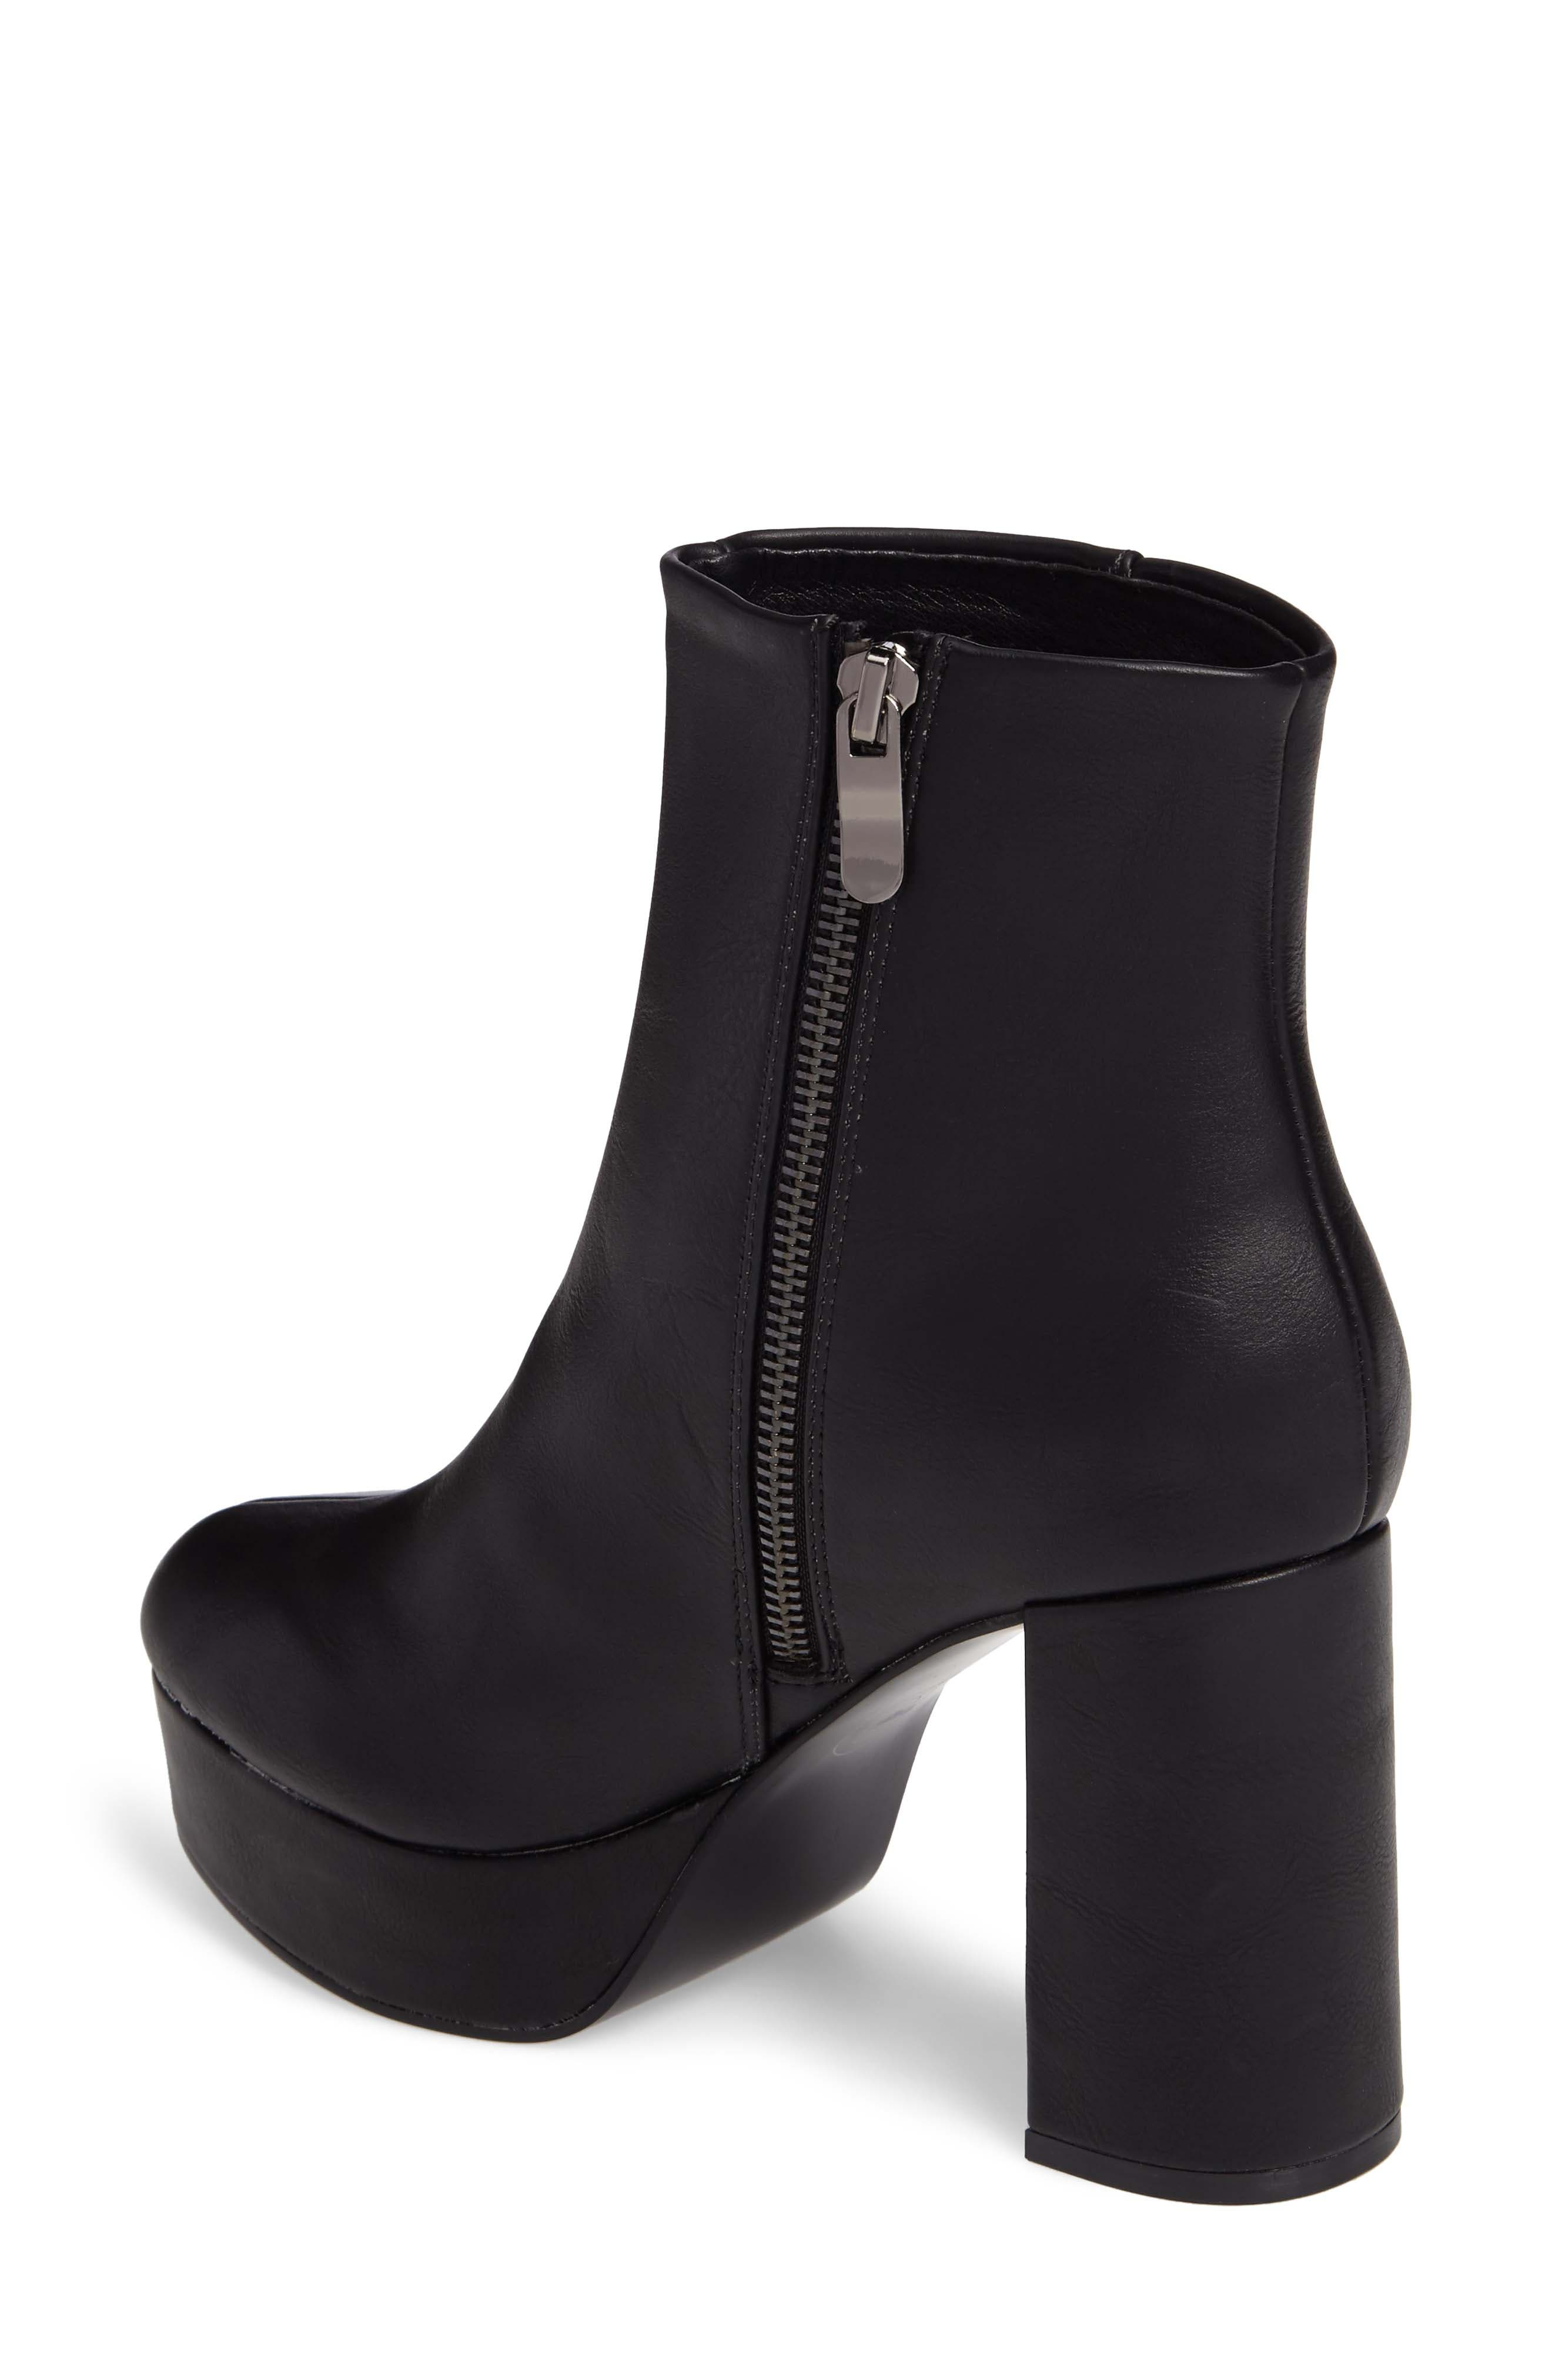 Nenna Platform Bootie,                             Alternate thumbnail 2, color,                             Black